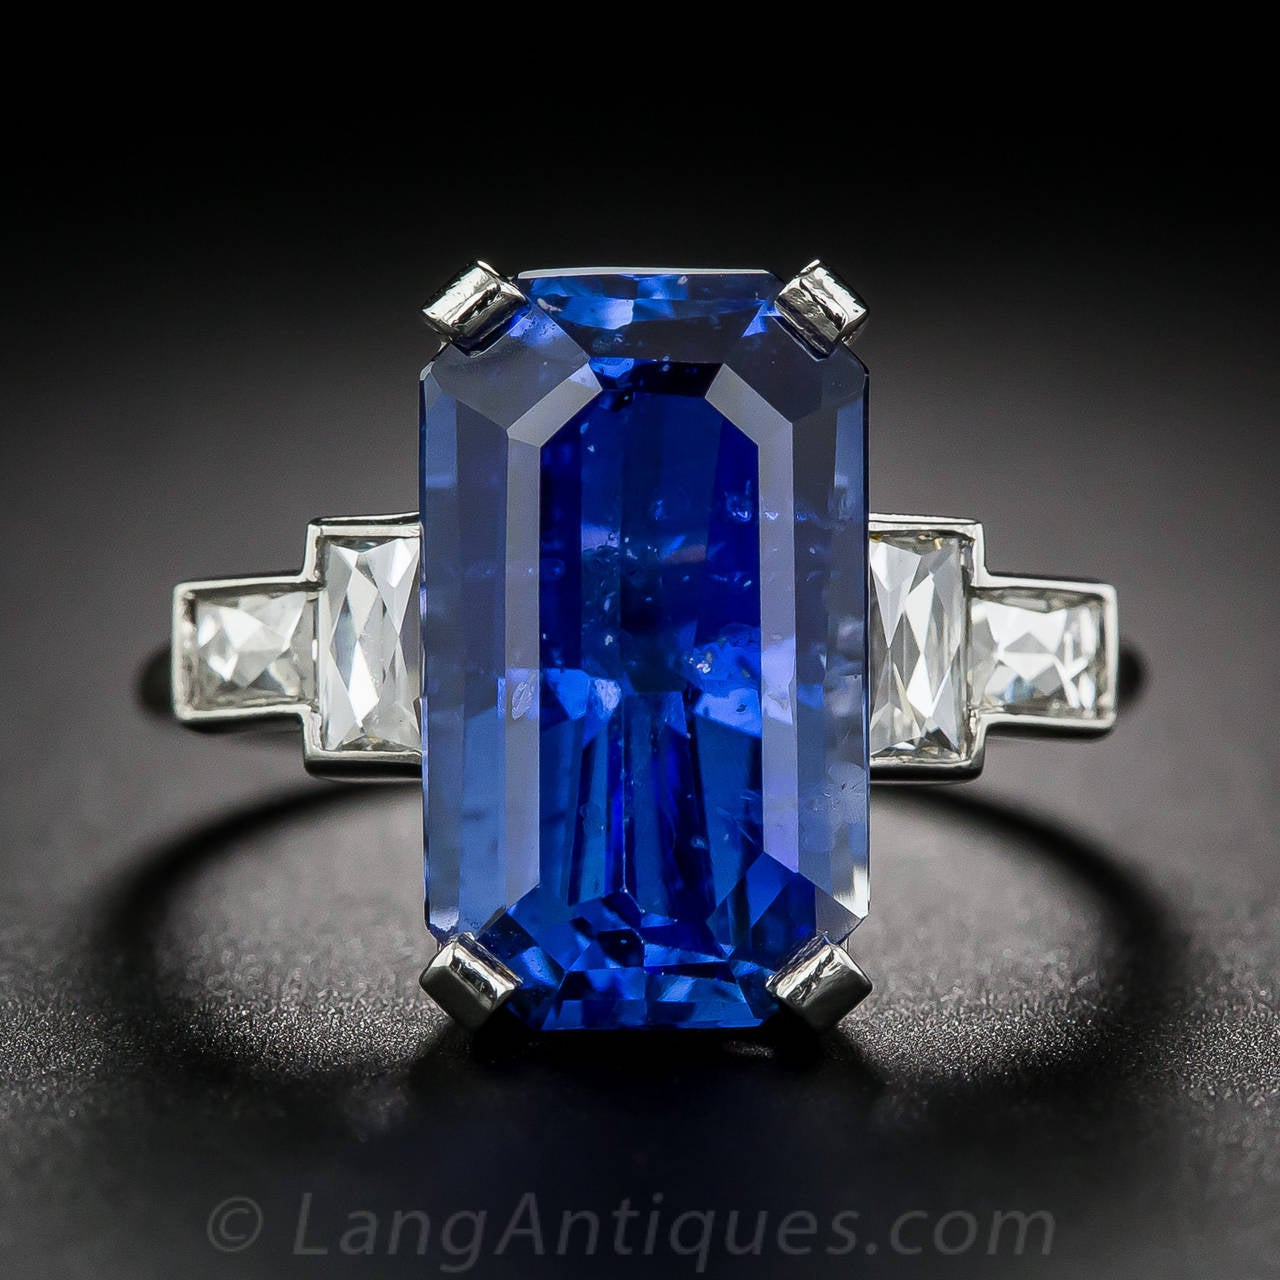 8 77 Carat Emerald Cut Sapphire Diamond Platinum Ring At